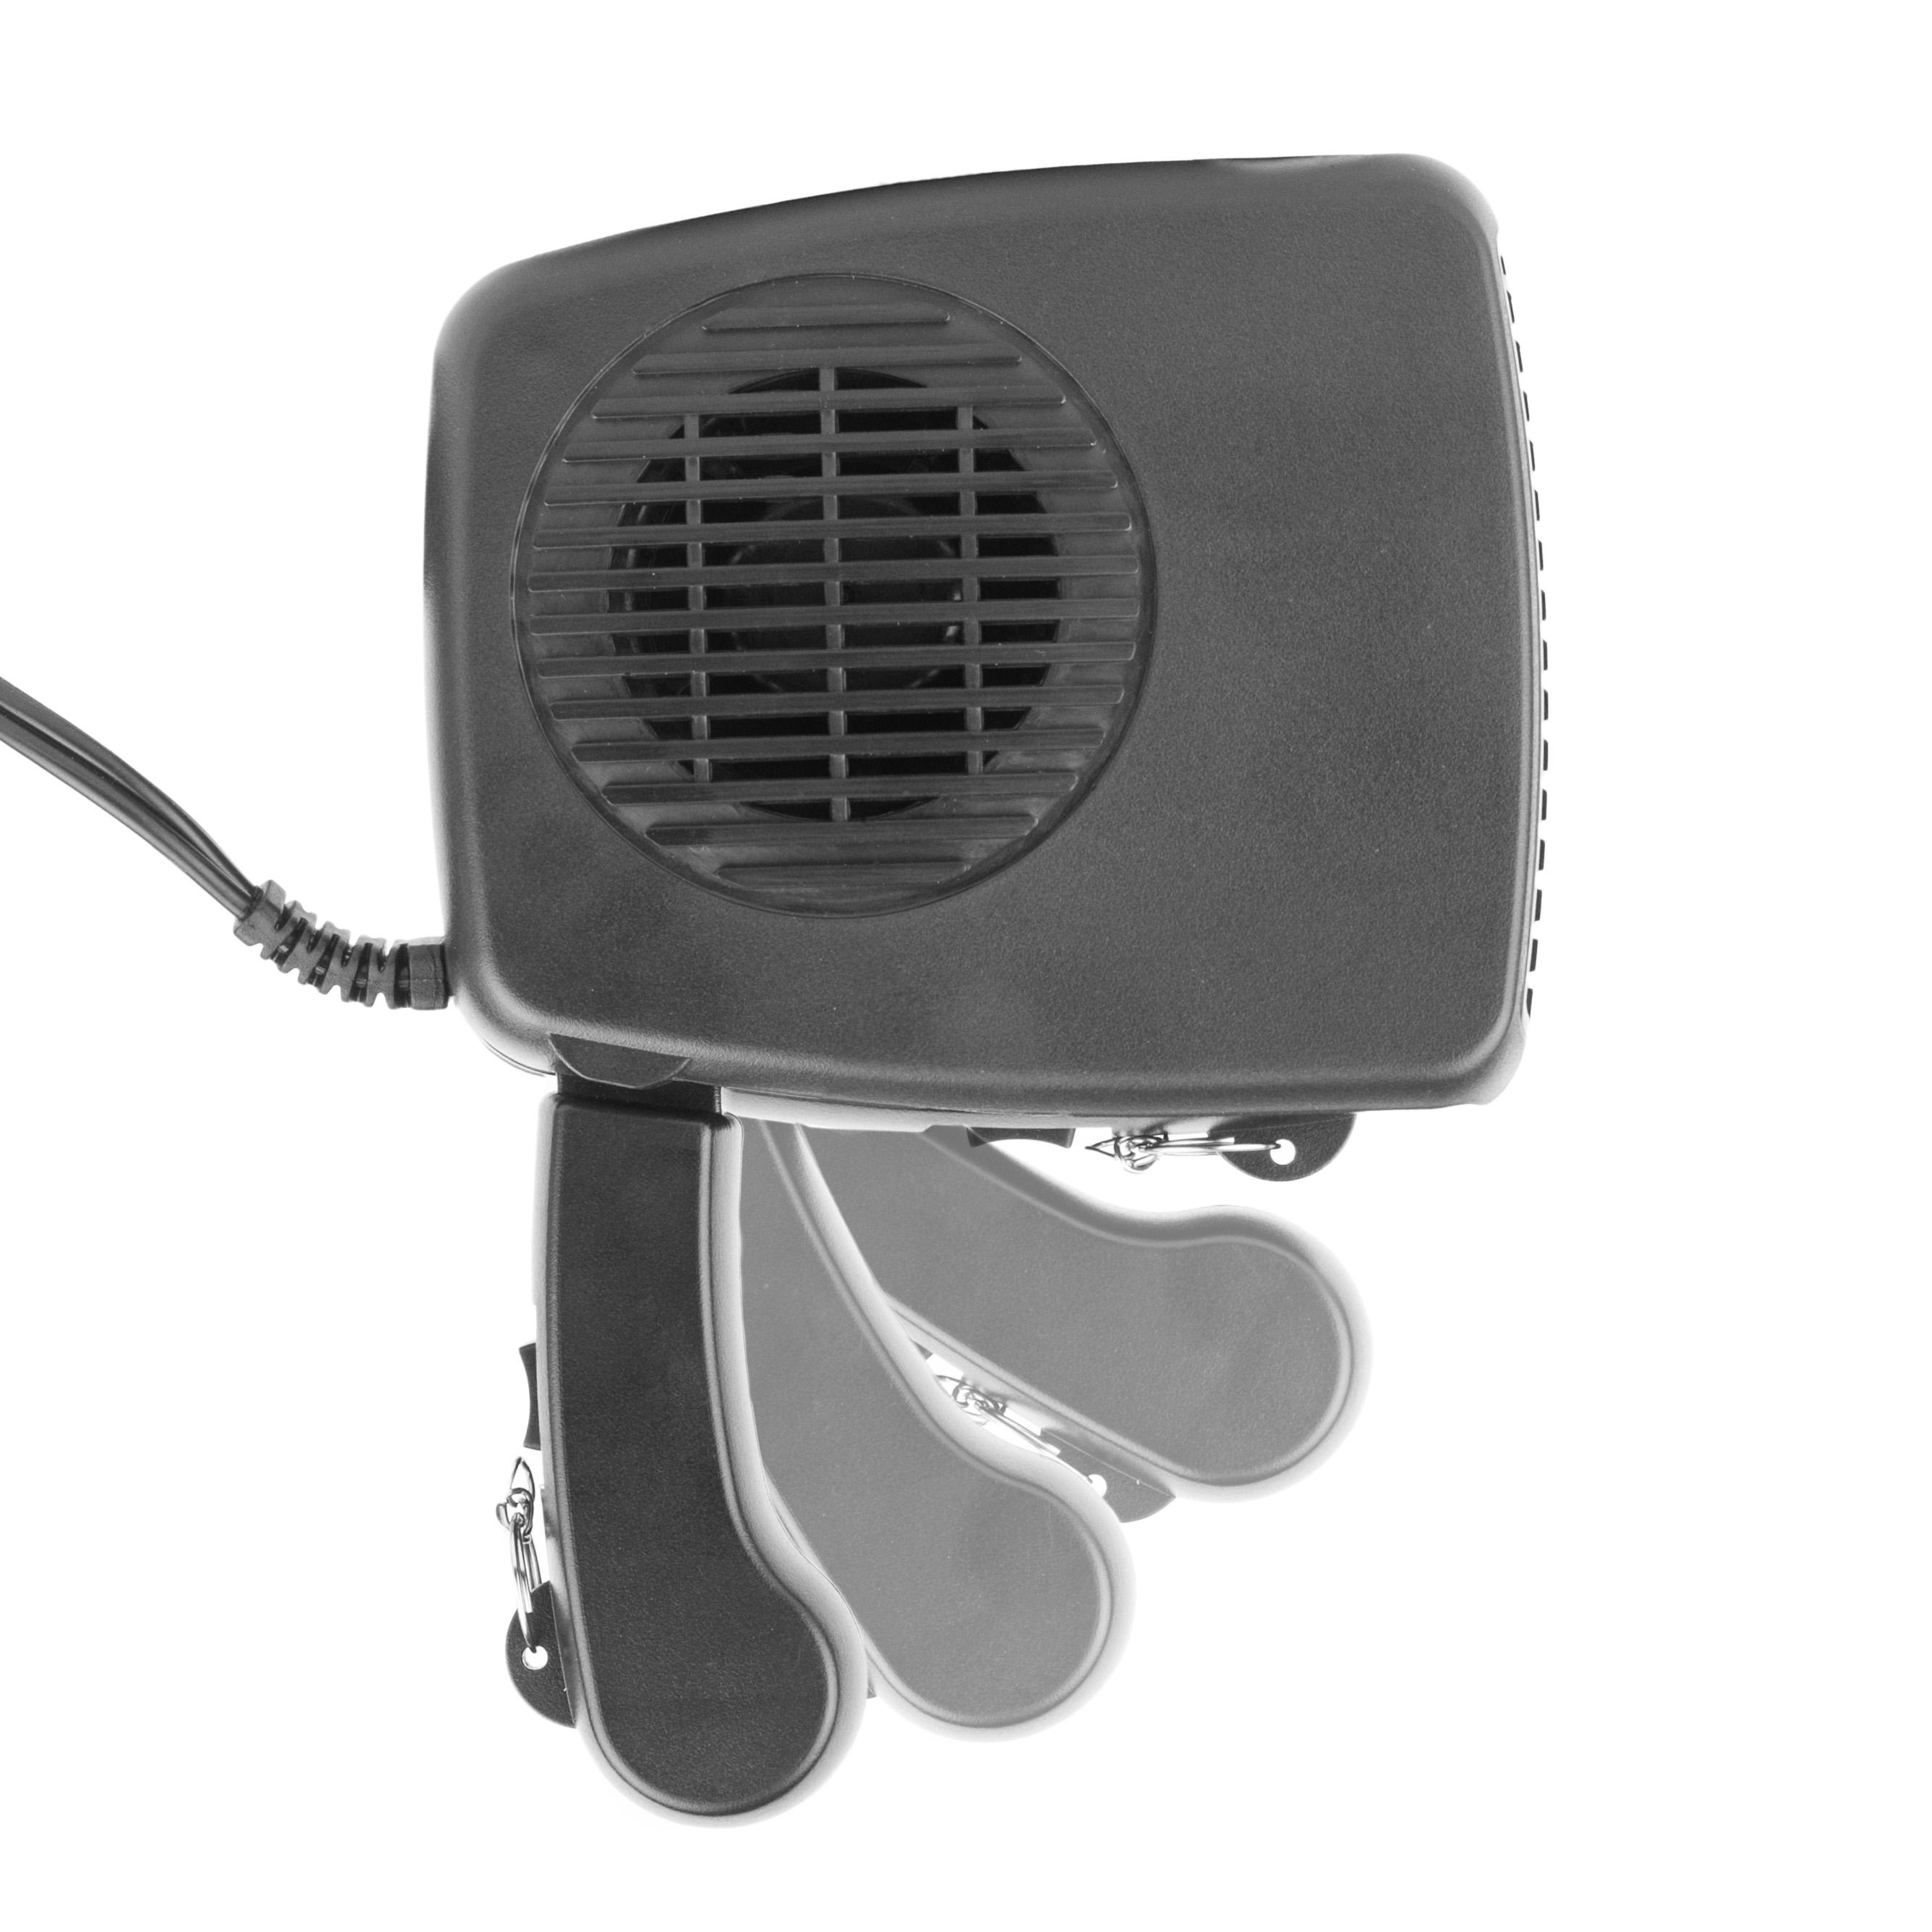 Subzero 12volt Window Defroster Brand New Keep You Fit All The Time Consumer Electronics